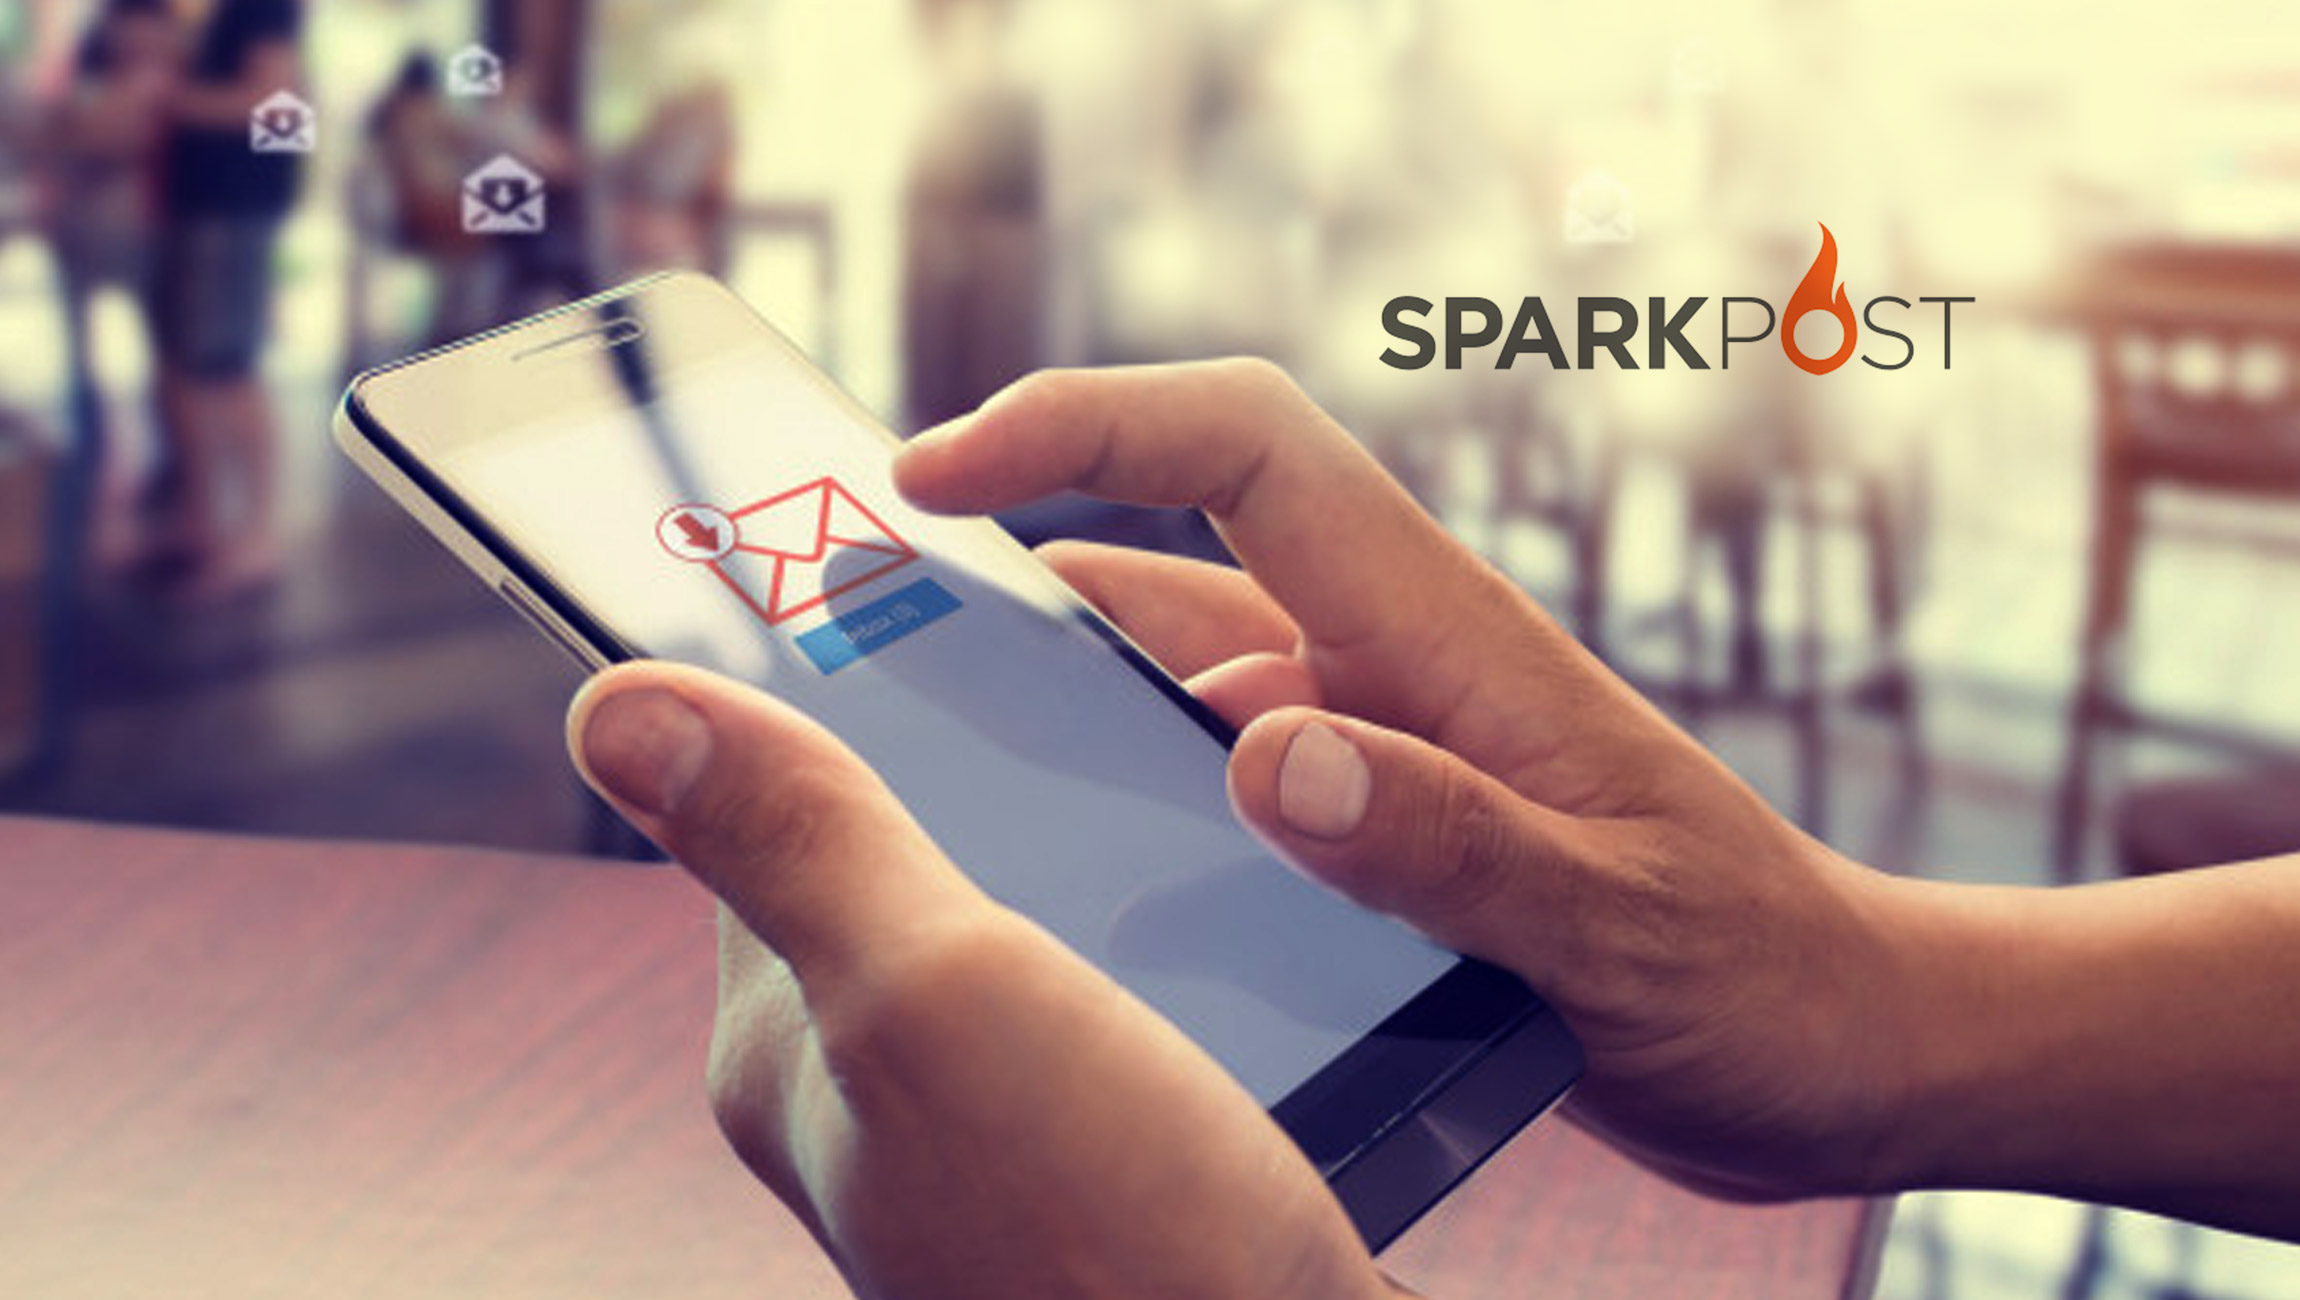 SparkPost Introduces New Recipient Validation Capabilities for Improved Email Deliverability